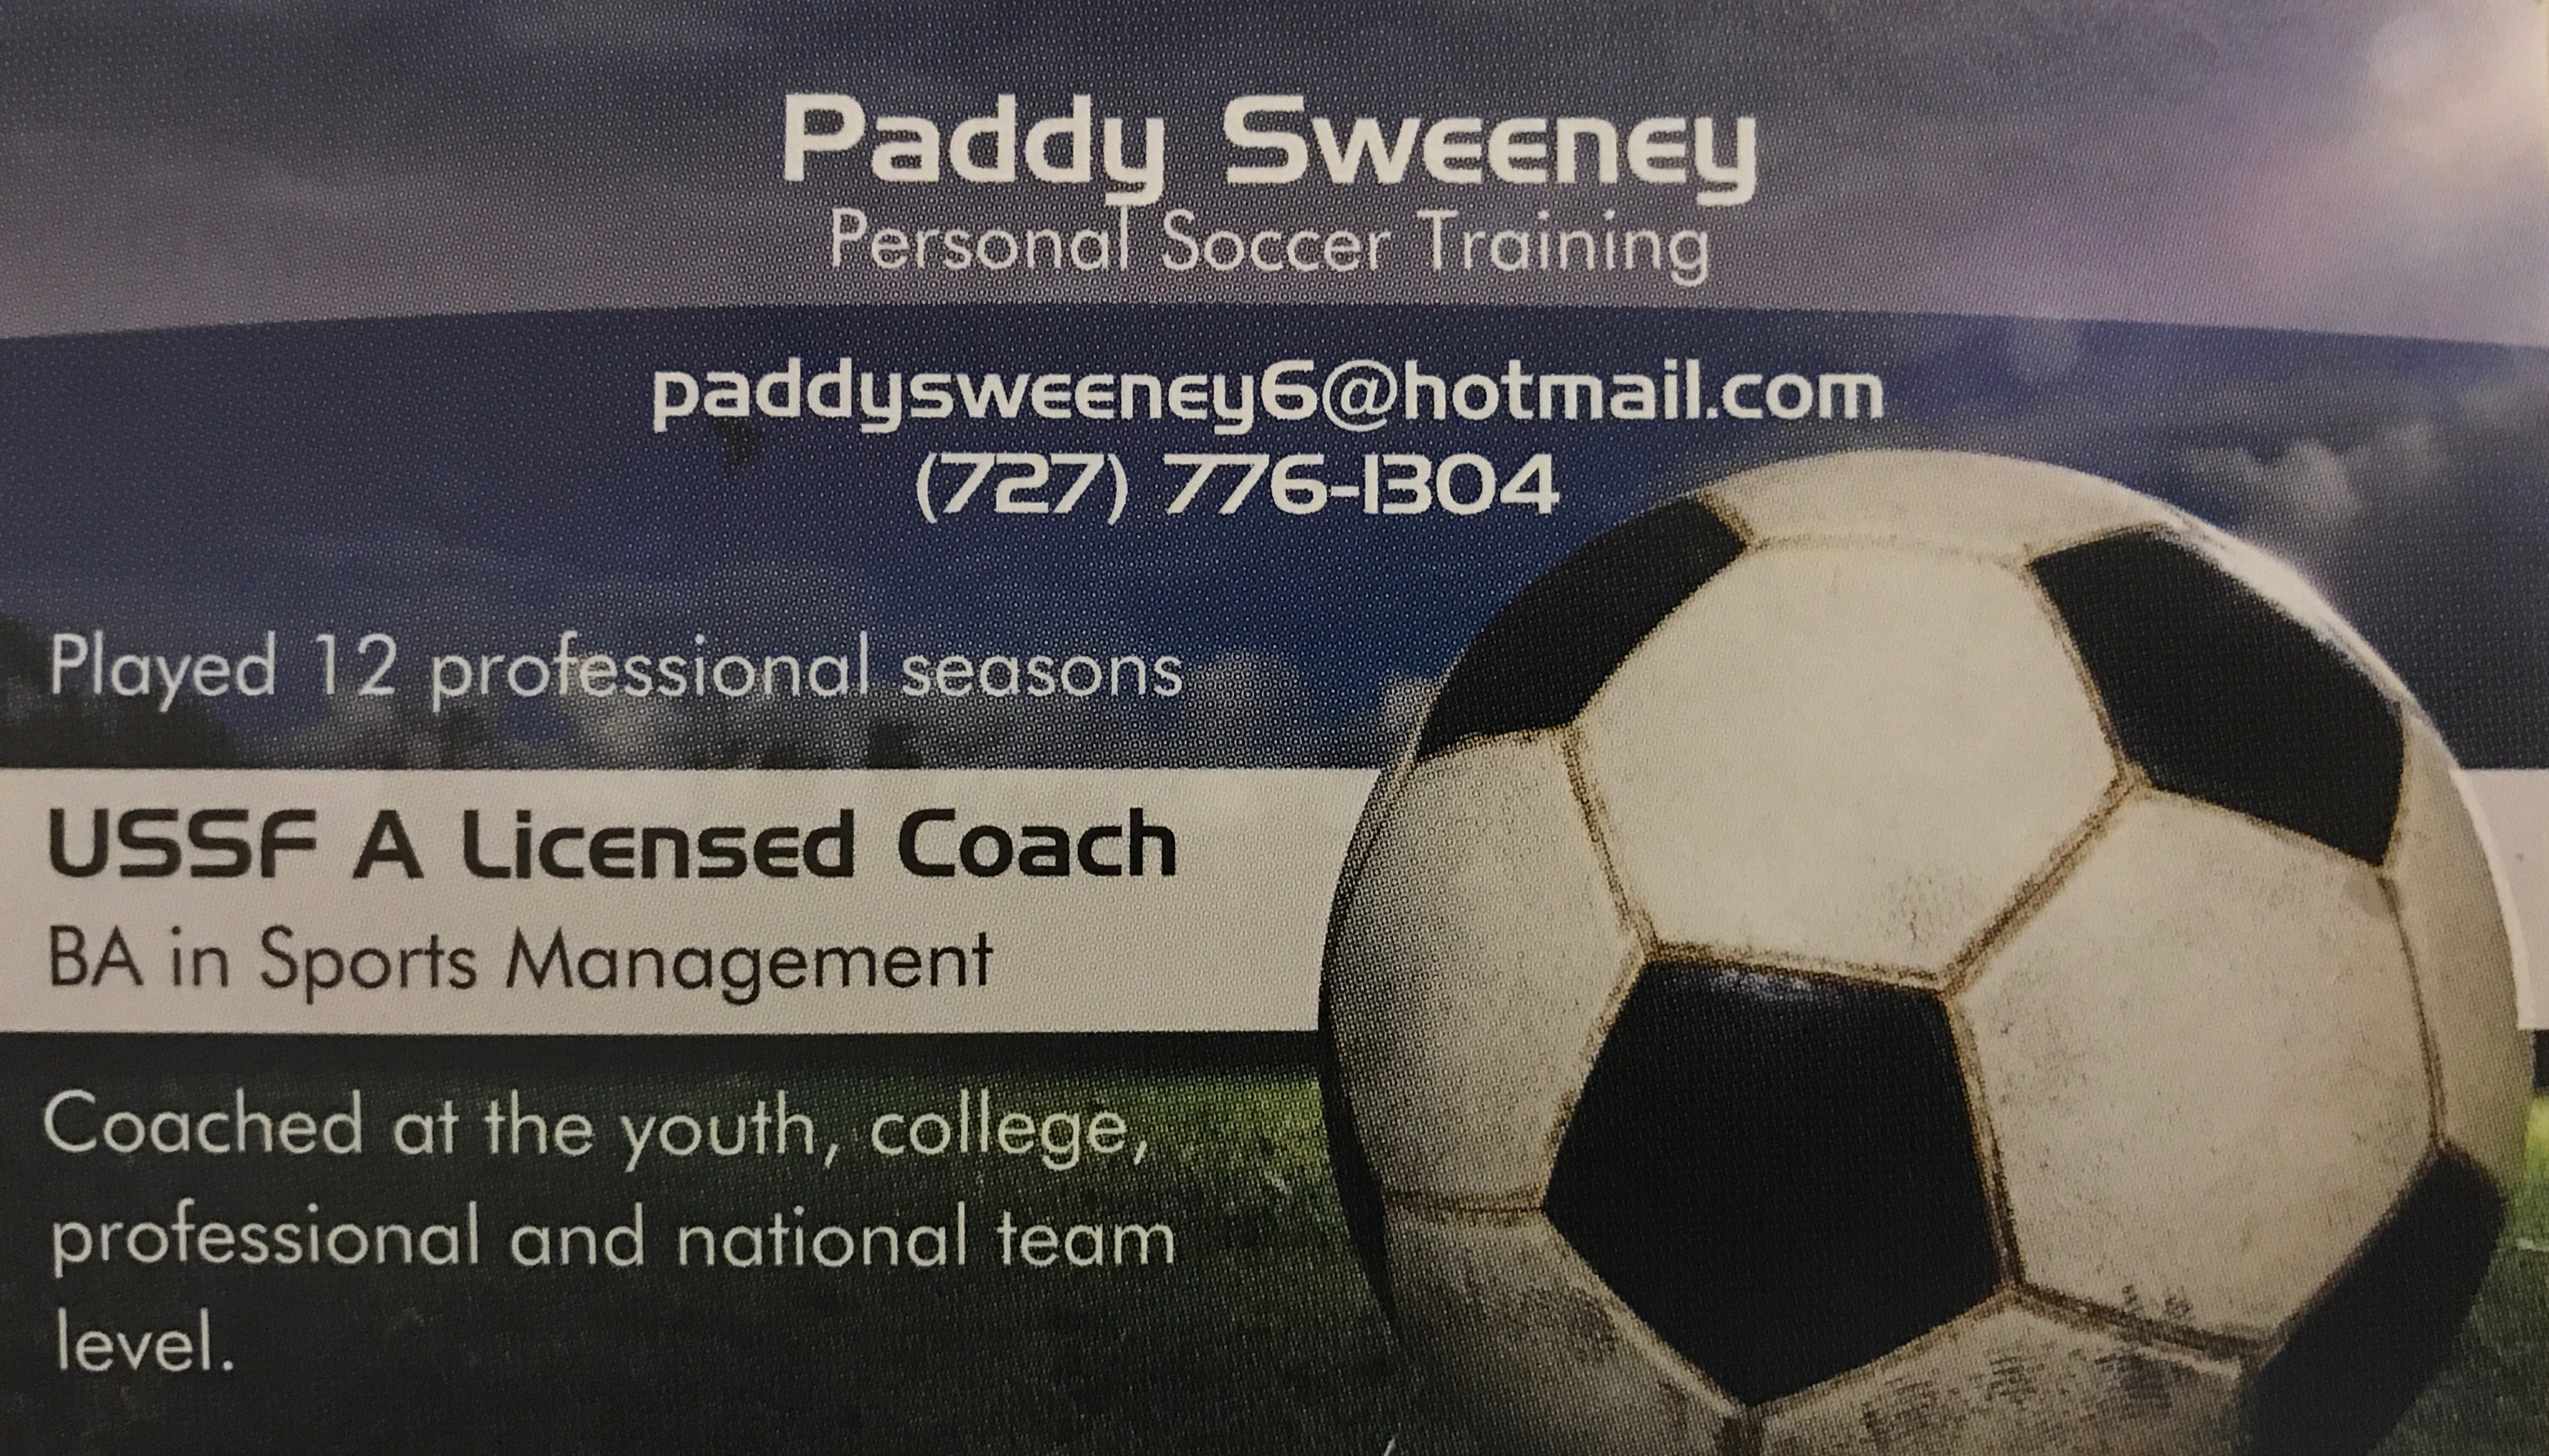 ⚽️Training with COACH PADDY⚽️